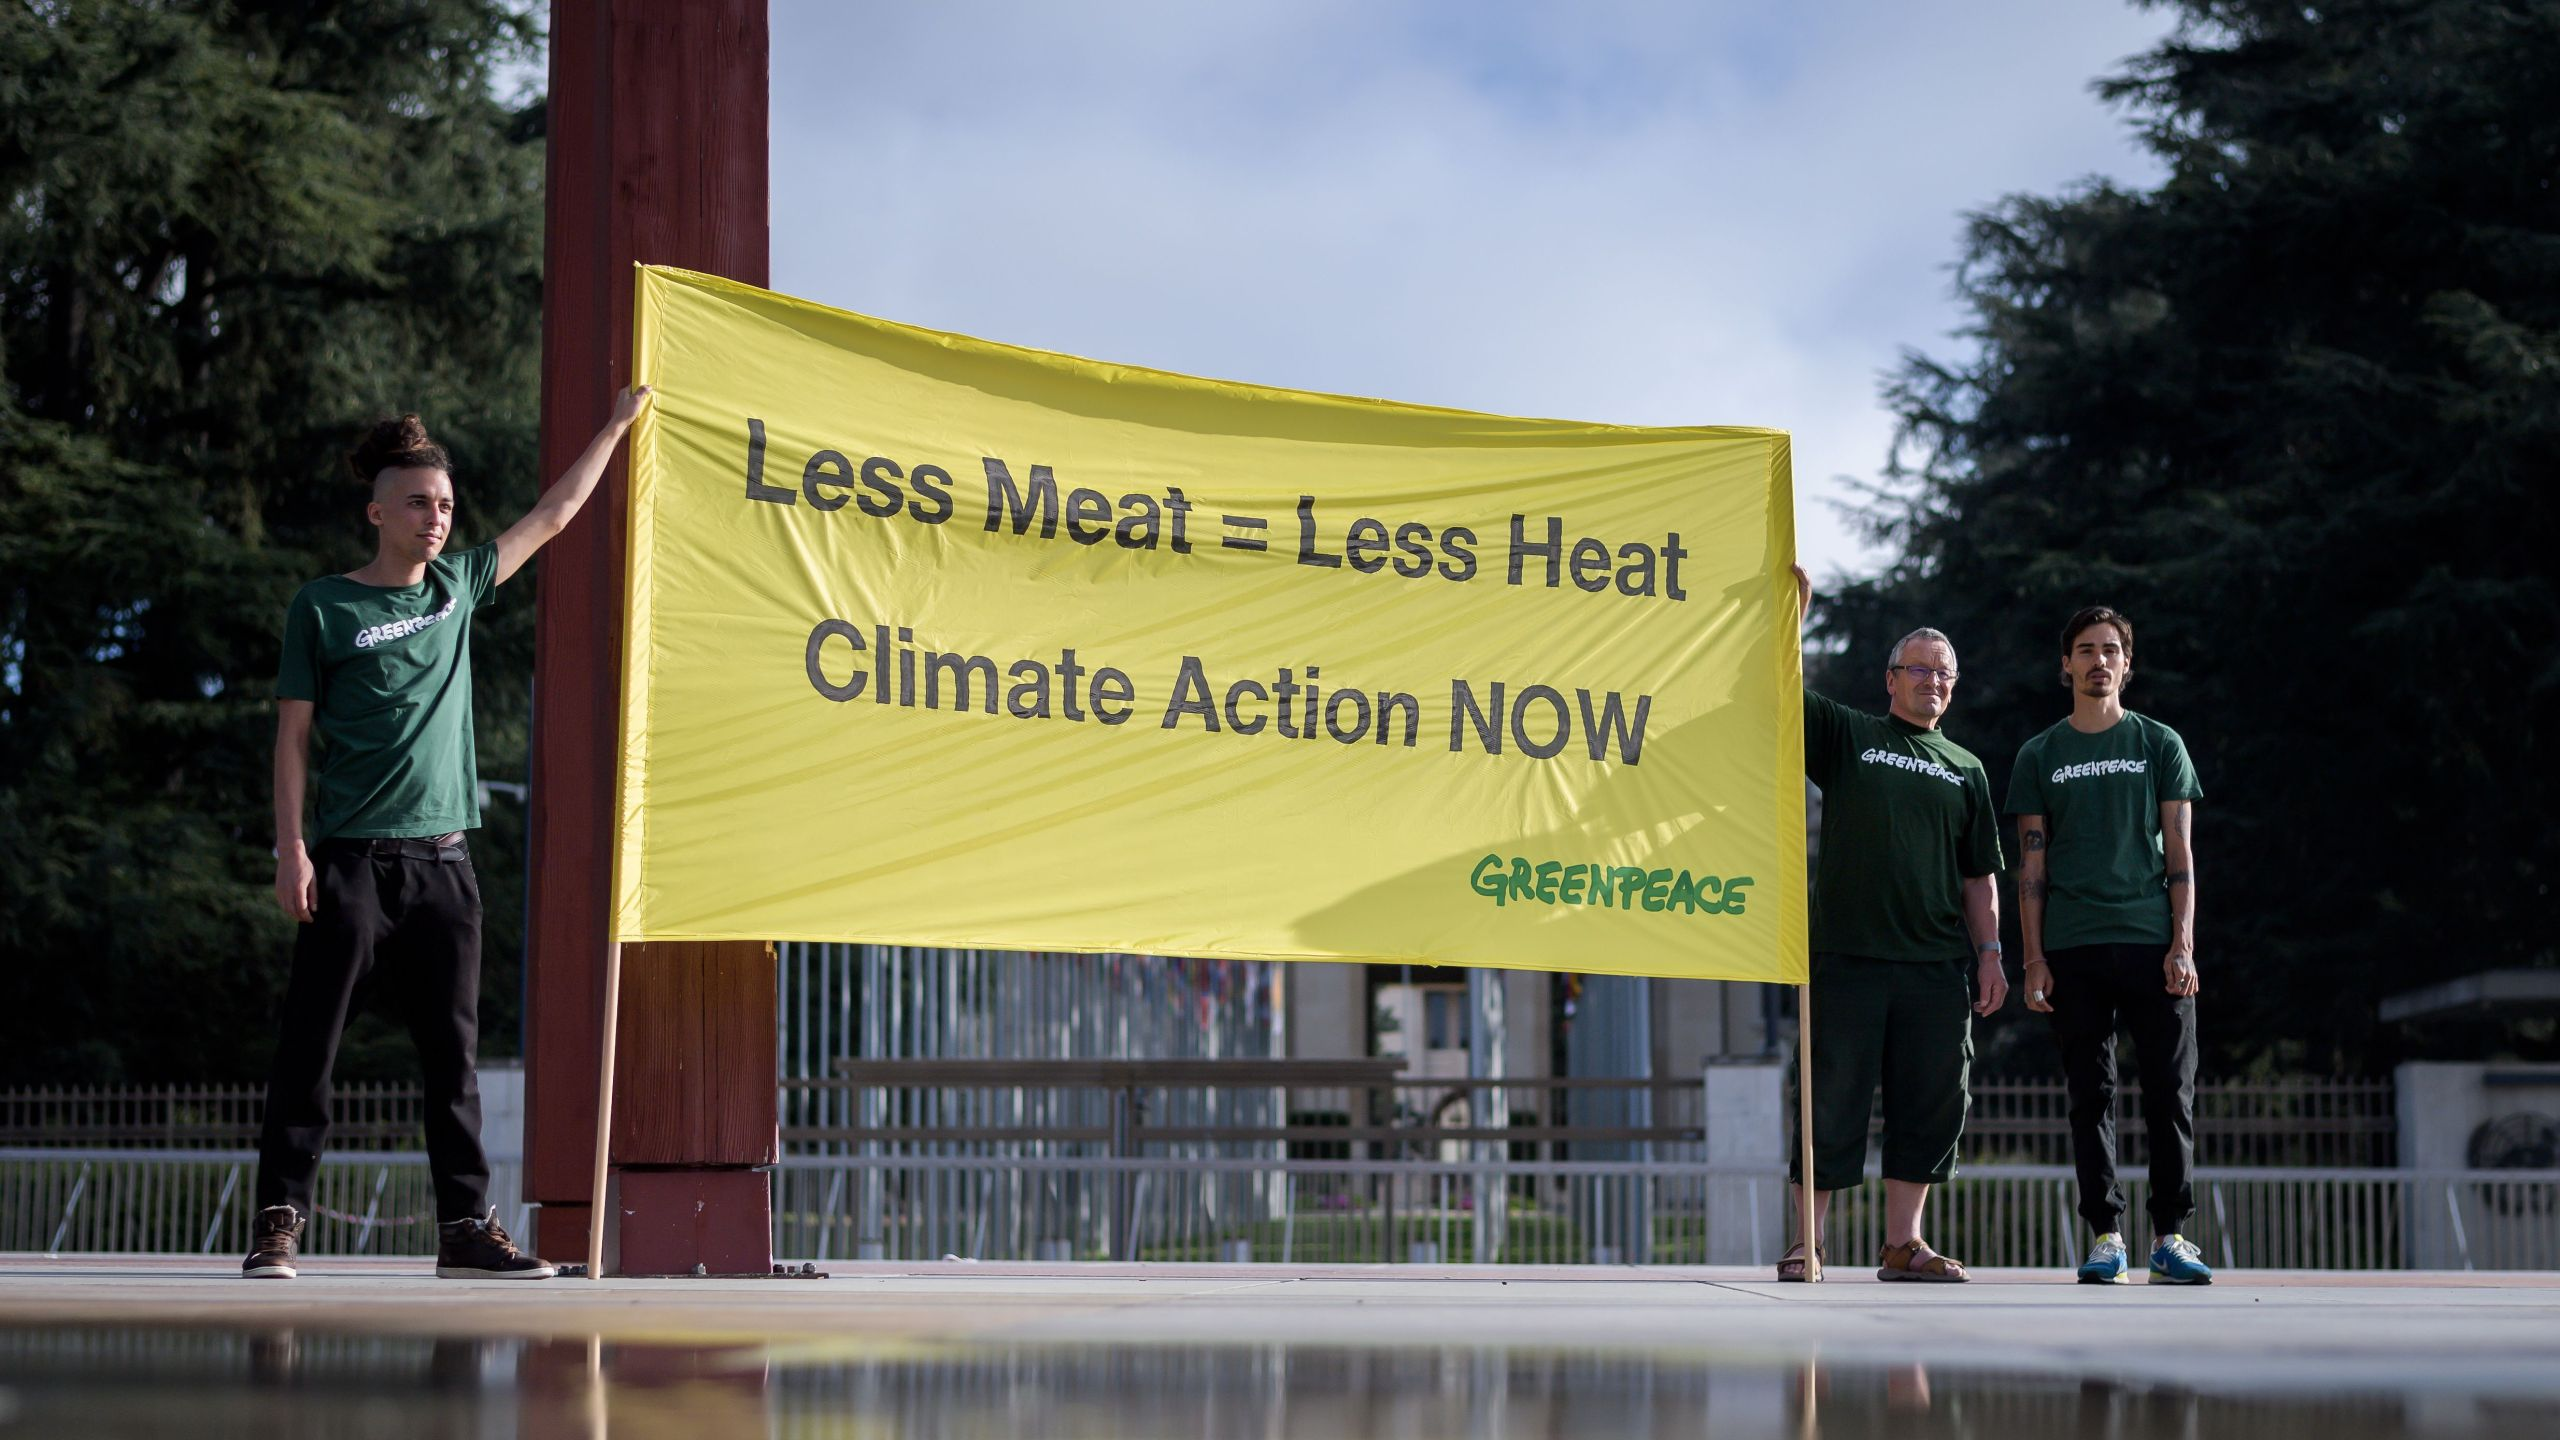 Greenpeace activists hold a banner during a protest prior to the publication by The UN's Intergovernmental Panel on Climate Change (IPCC) of a special report on climate change and land on Aug. 8, 2019, in Geneva. (Credit: FABRICE COFFRINI/AFP/Getty Images)